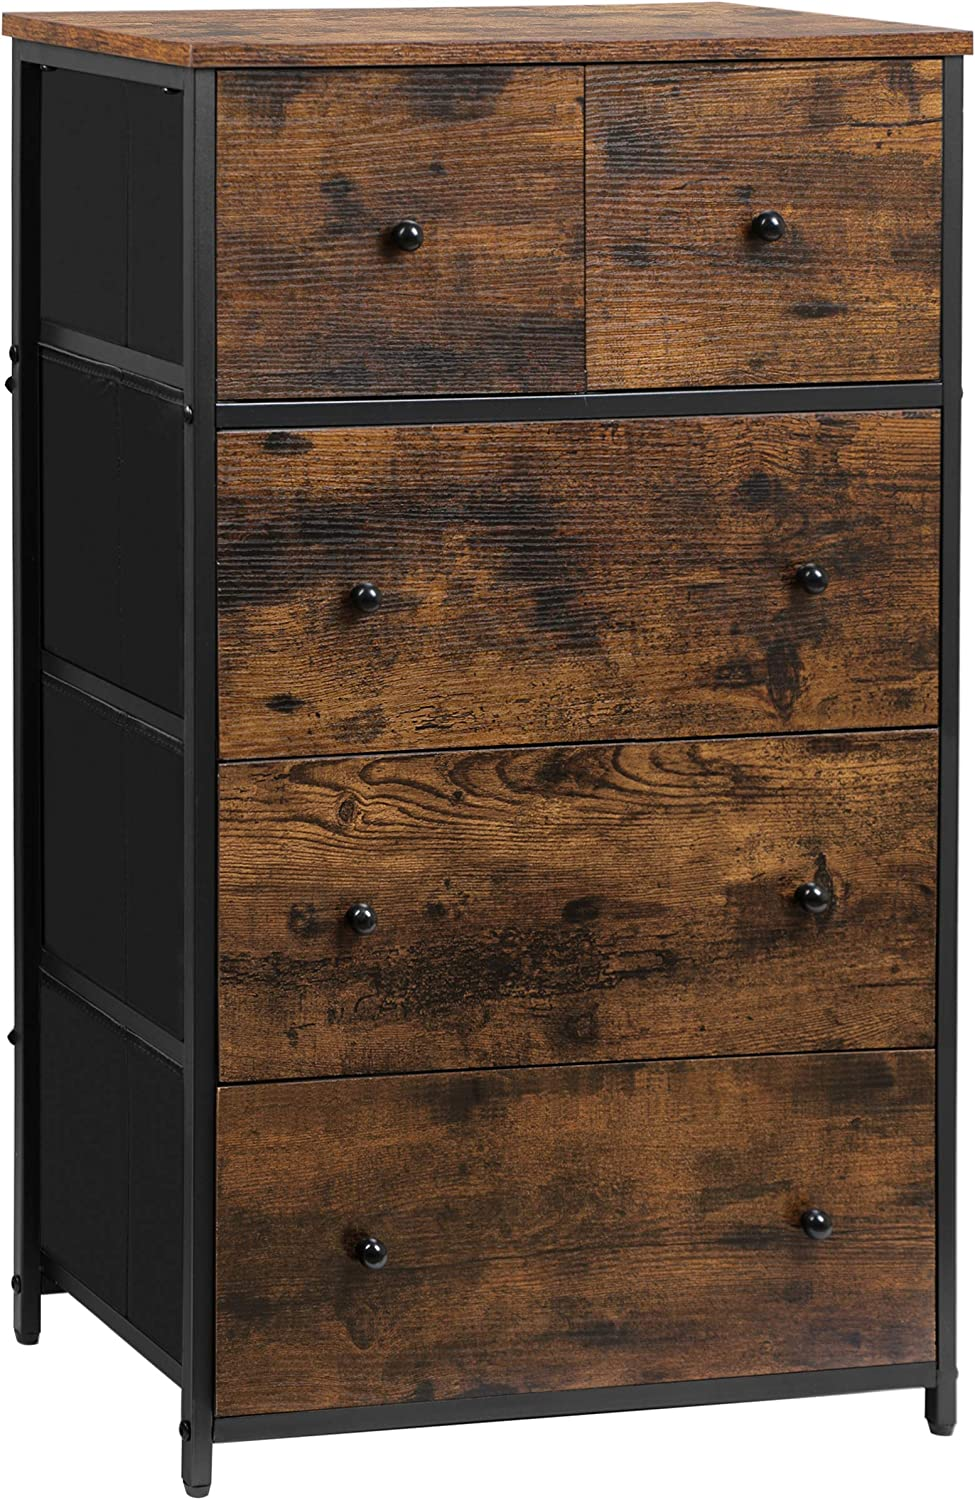 CASATOCA 5 Drawer NEW before selling Dresser Storage Popular product Cabinet with Drawers Fabric